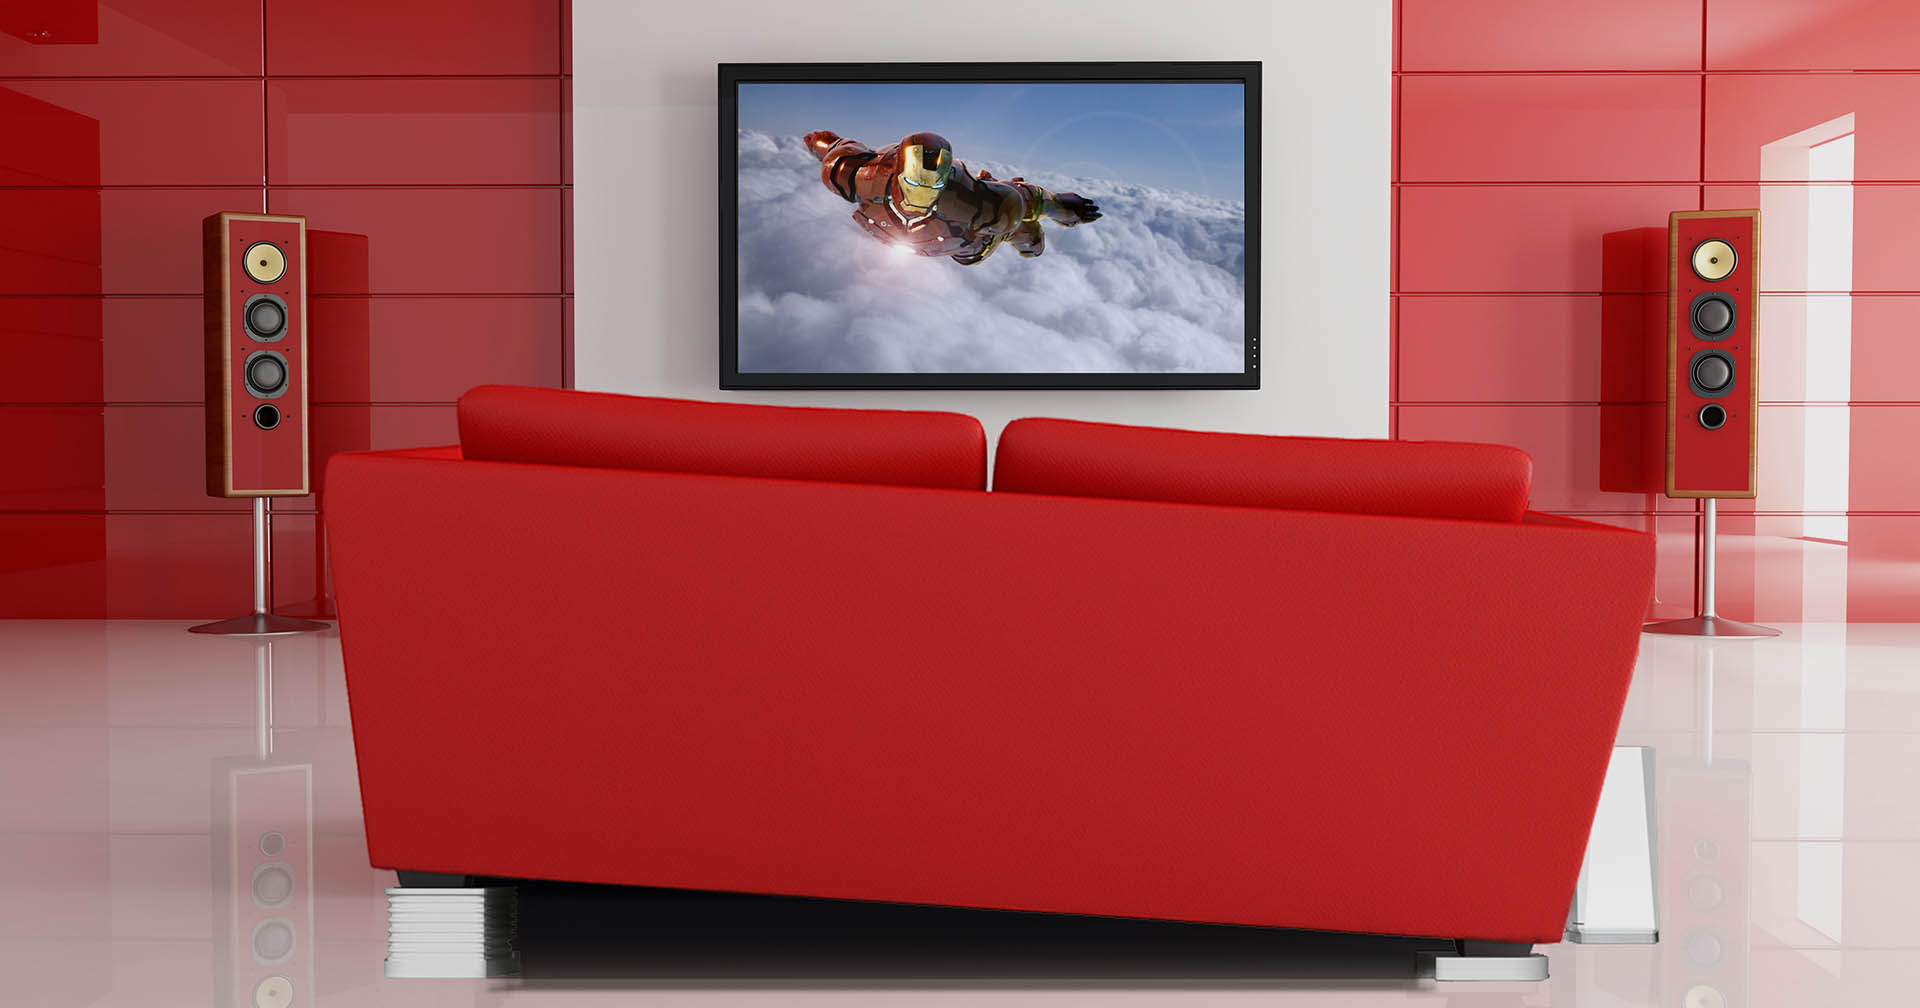 Immersits 4D Technology Coming To Your Couch